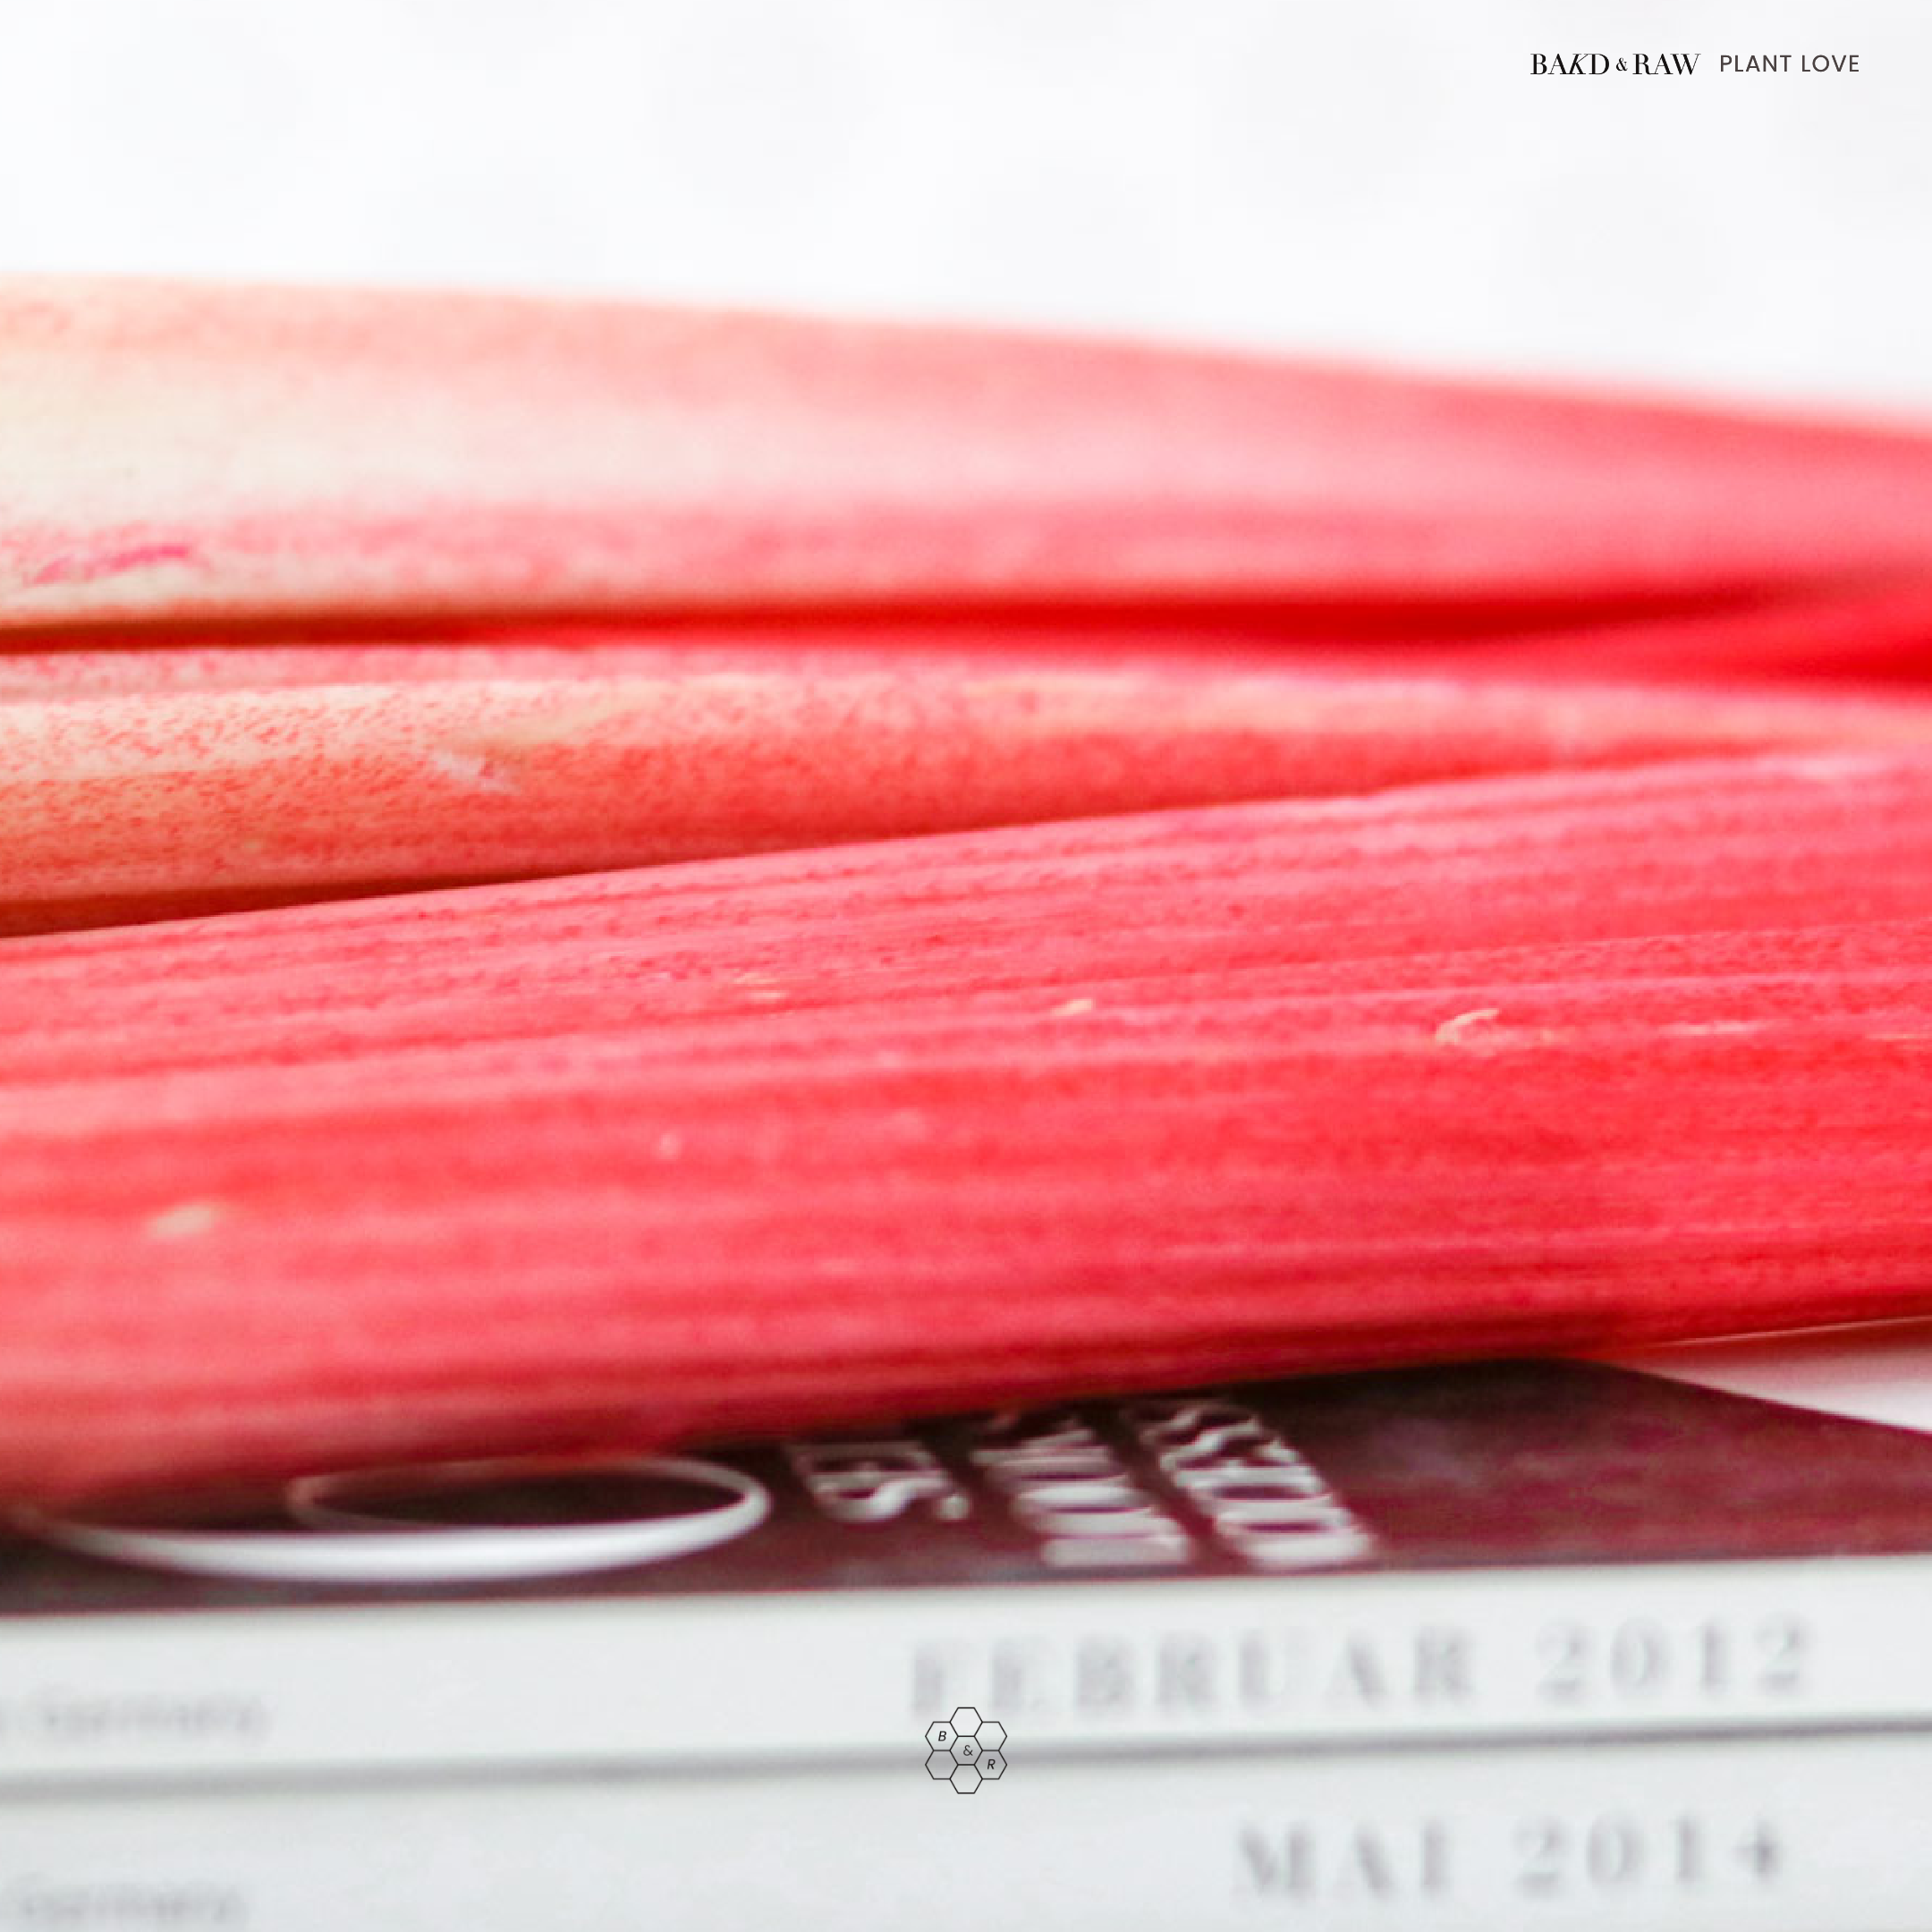 Rhubarb seasonal vegetable by Bakd&Raw, Karolin Baitinger